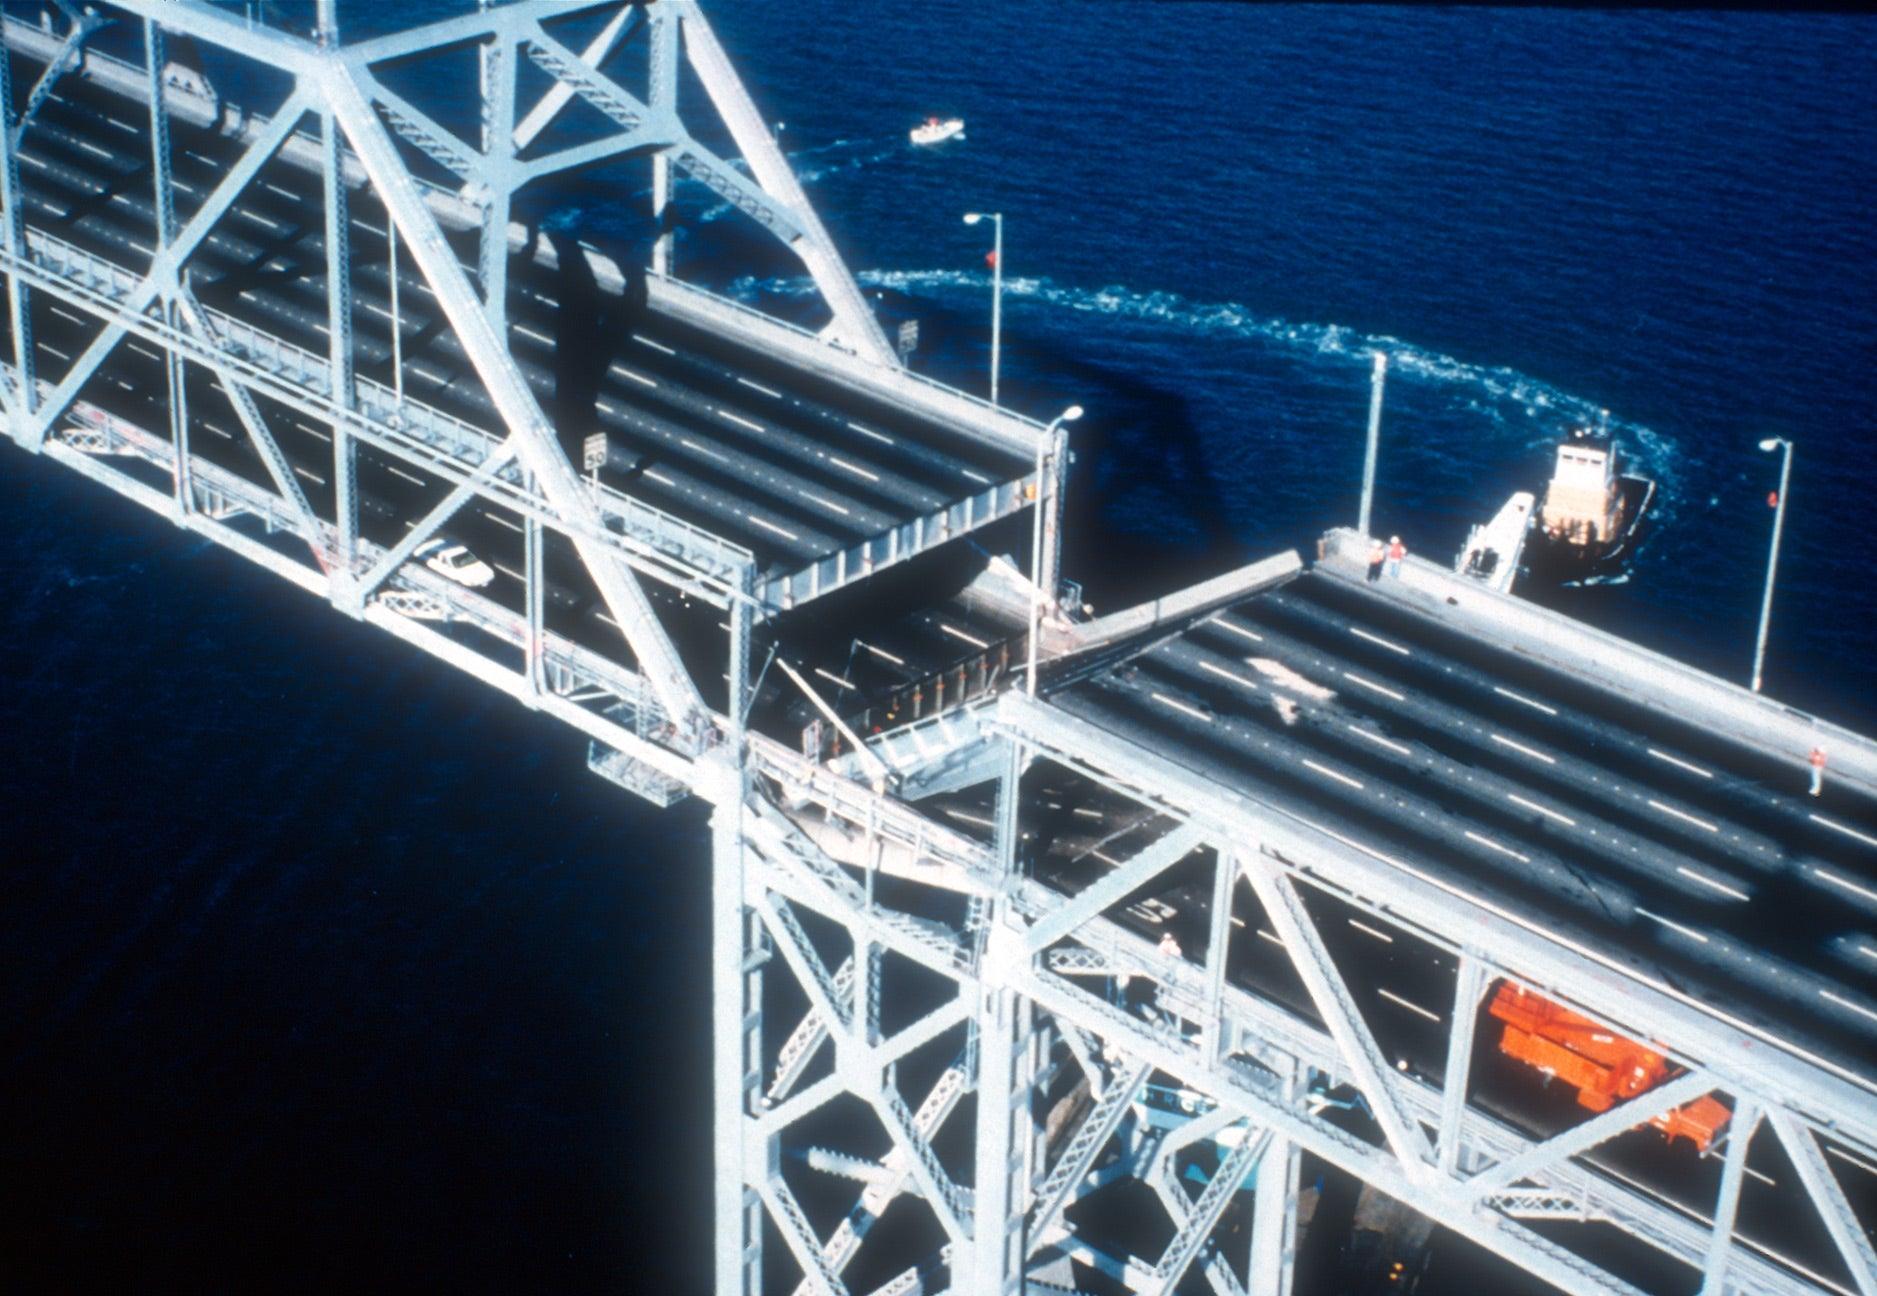 Loma Prieta fractured the upper deck of the Bay Bridge East Span.